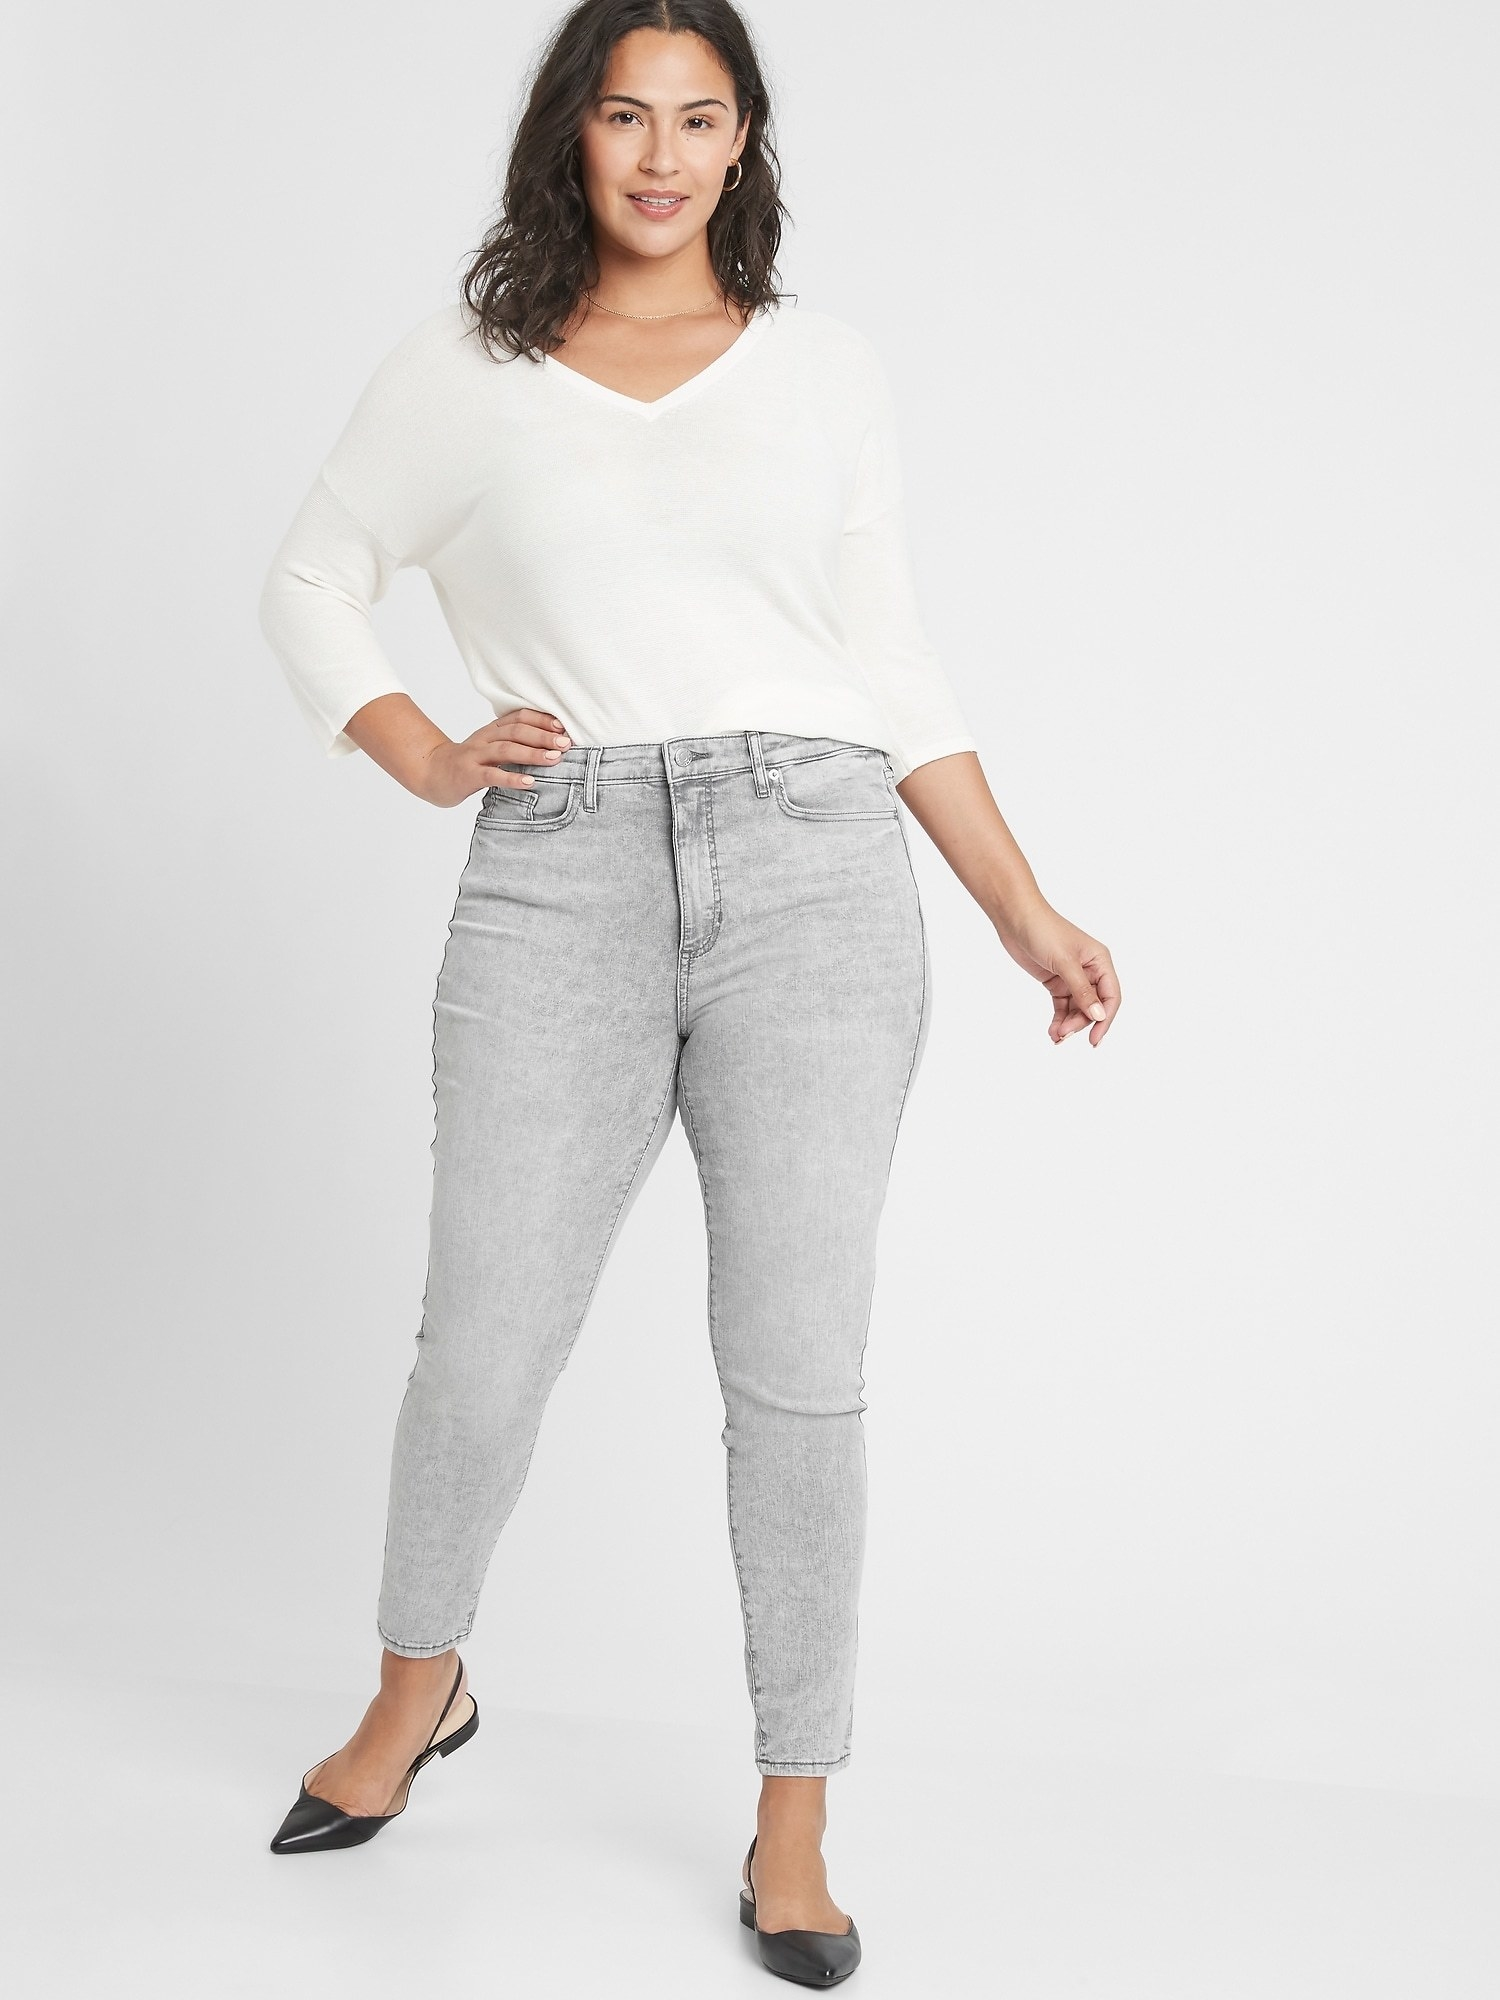 Model in the light grey mid-rise jeans